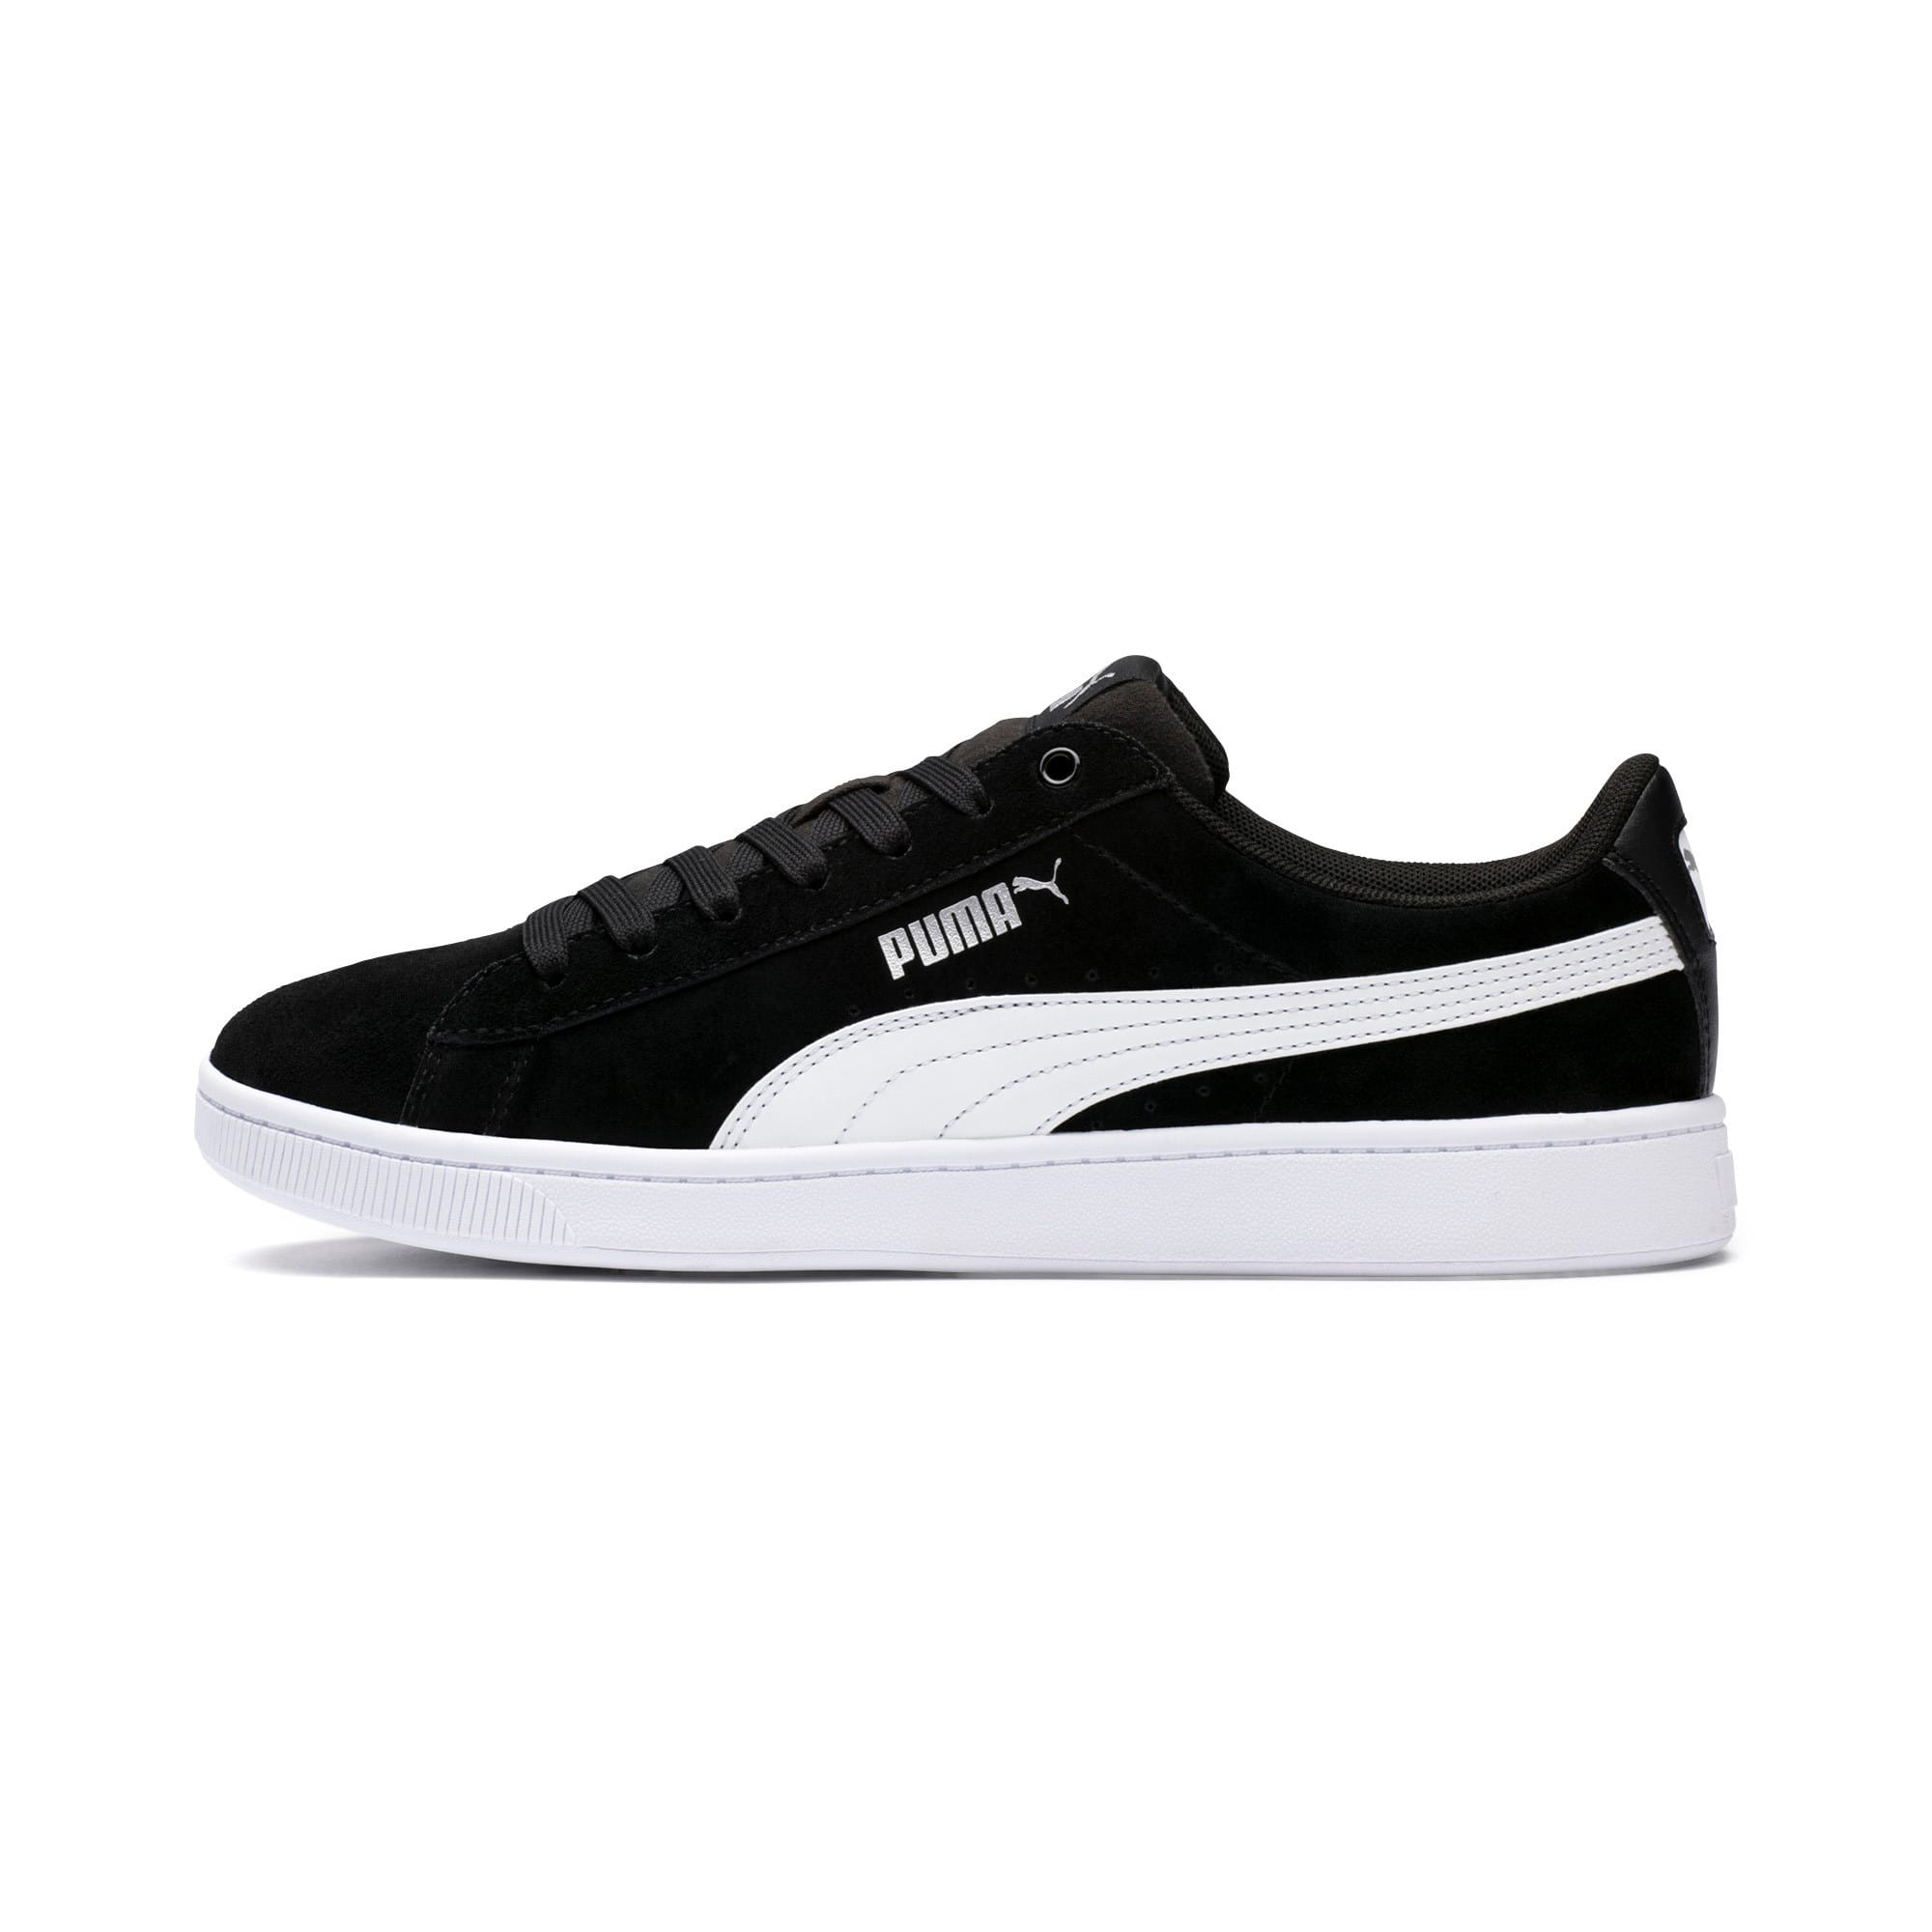 Thumbnail 1 of PUMA Vikky v2 Women's Sneakers, Puma Black-Puma White-Silver, medium